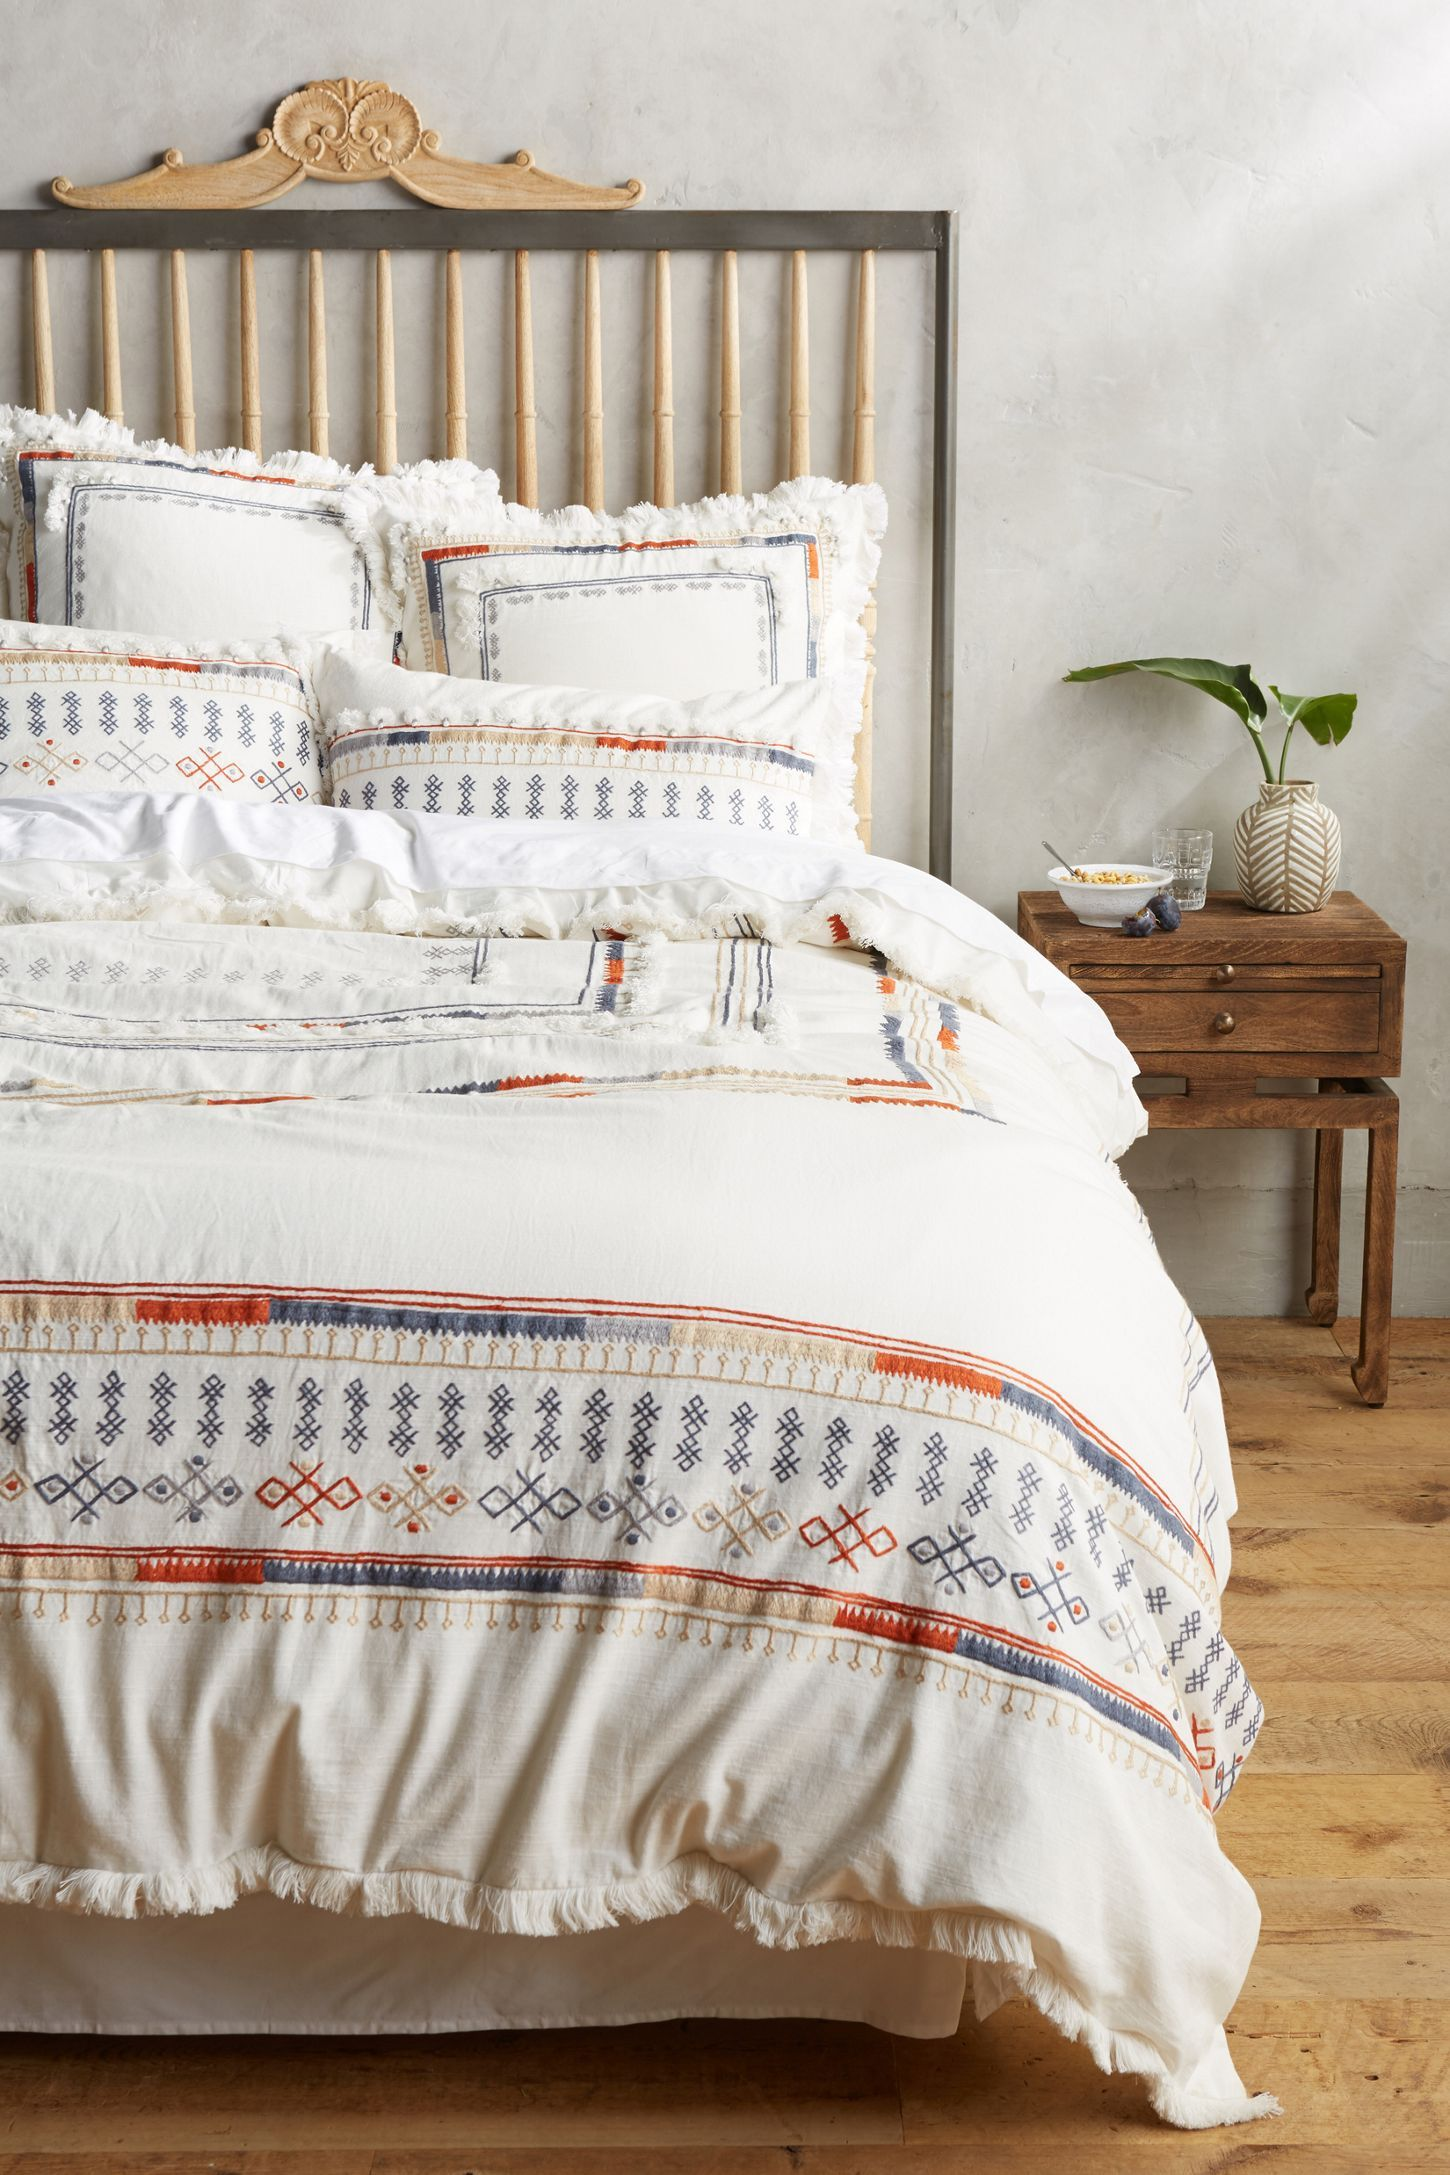 Kessabine Duvet Cover Anthropologie Bedroom Bedding Anthropologie Bedroom Anthropologie Bedding